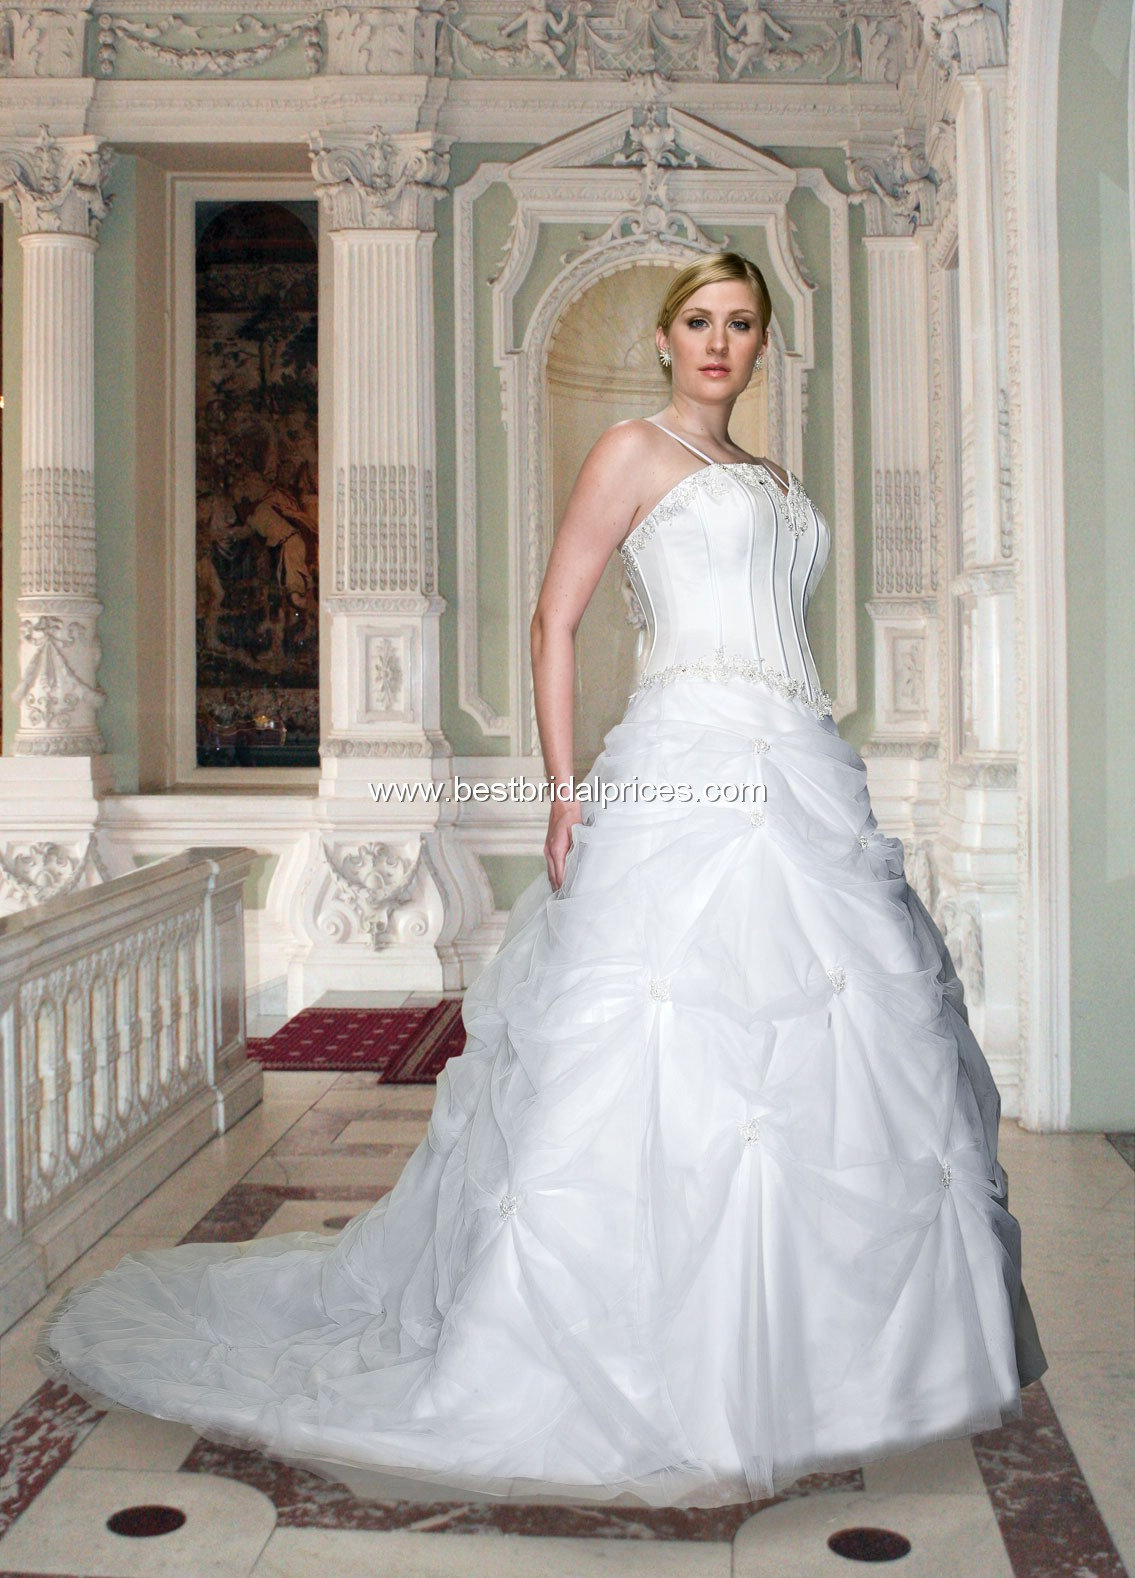 7982aeb90 ... Plus Size Wedding Dresses. Satin strapless gown with notched neckline